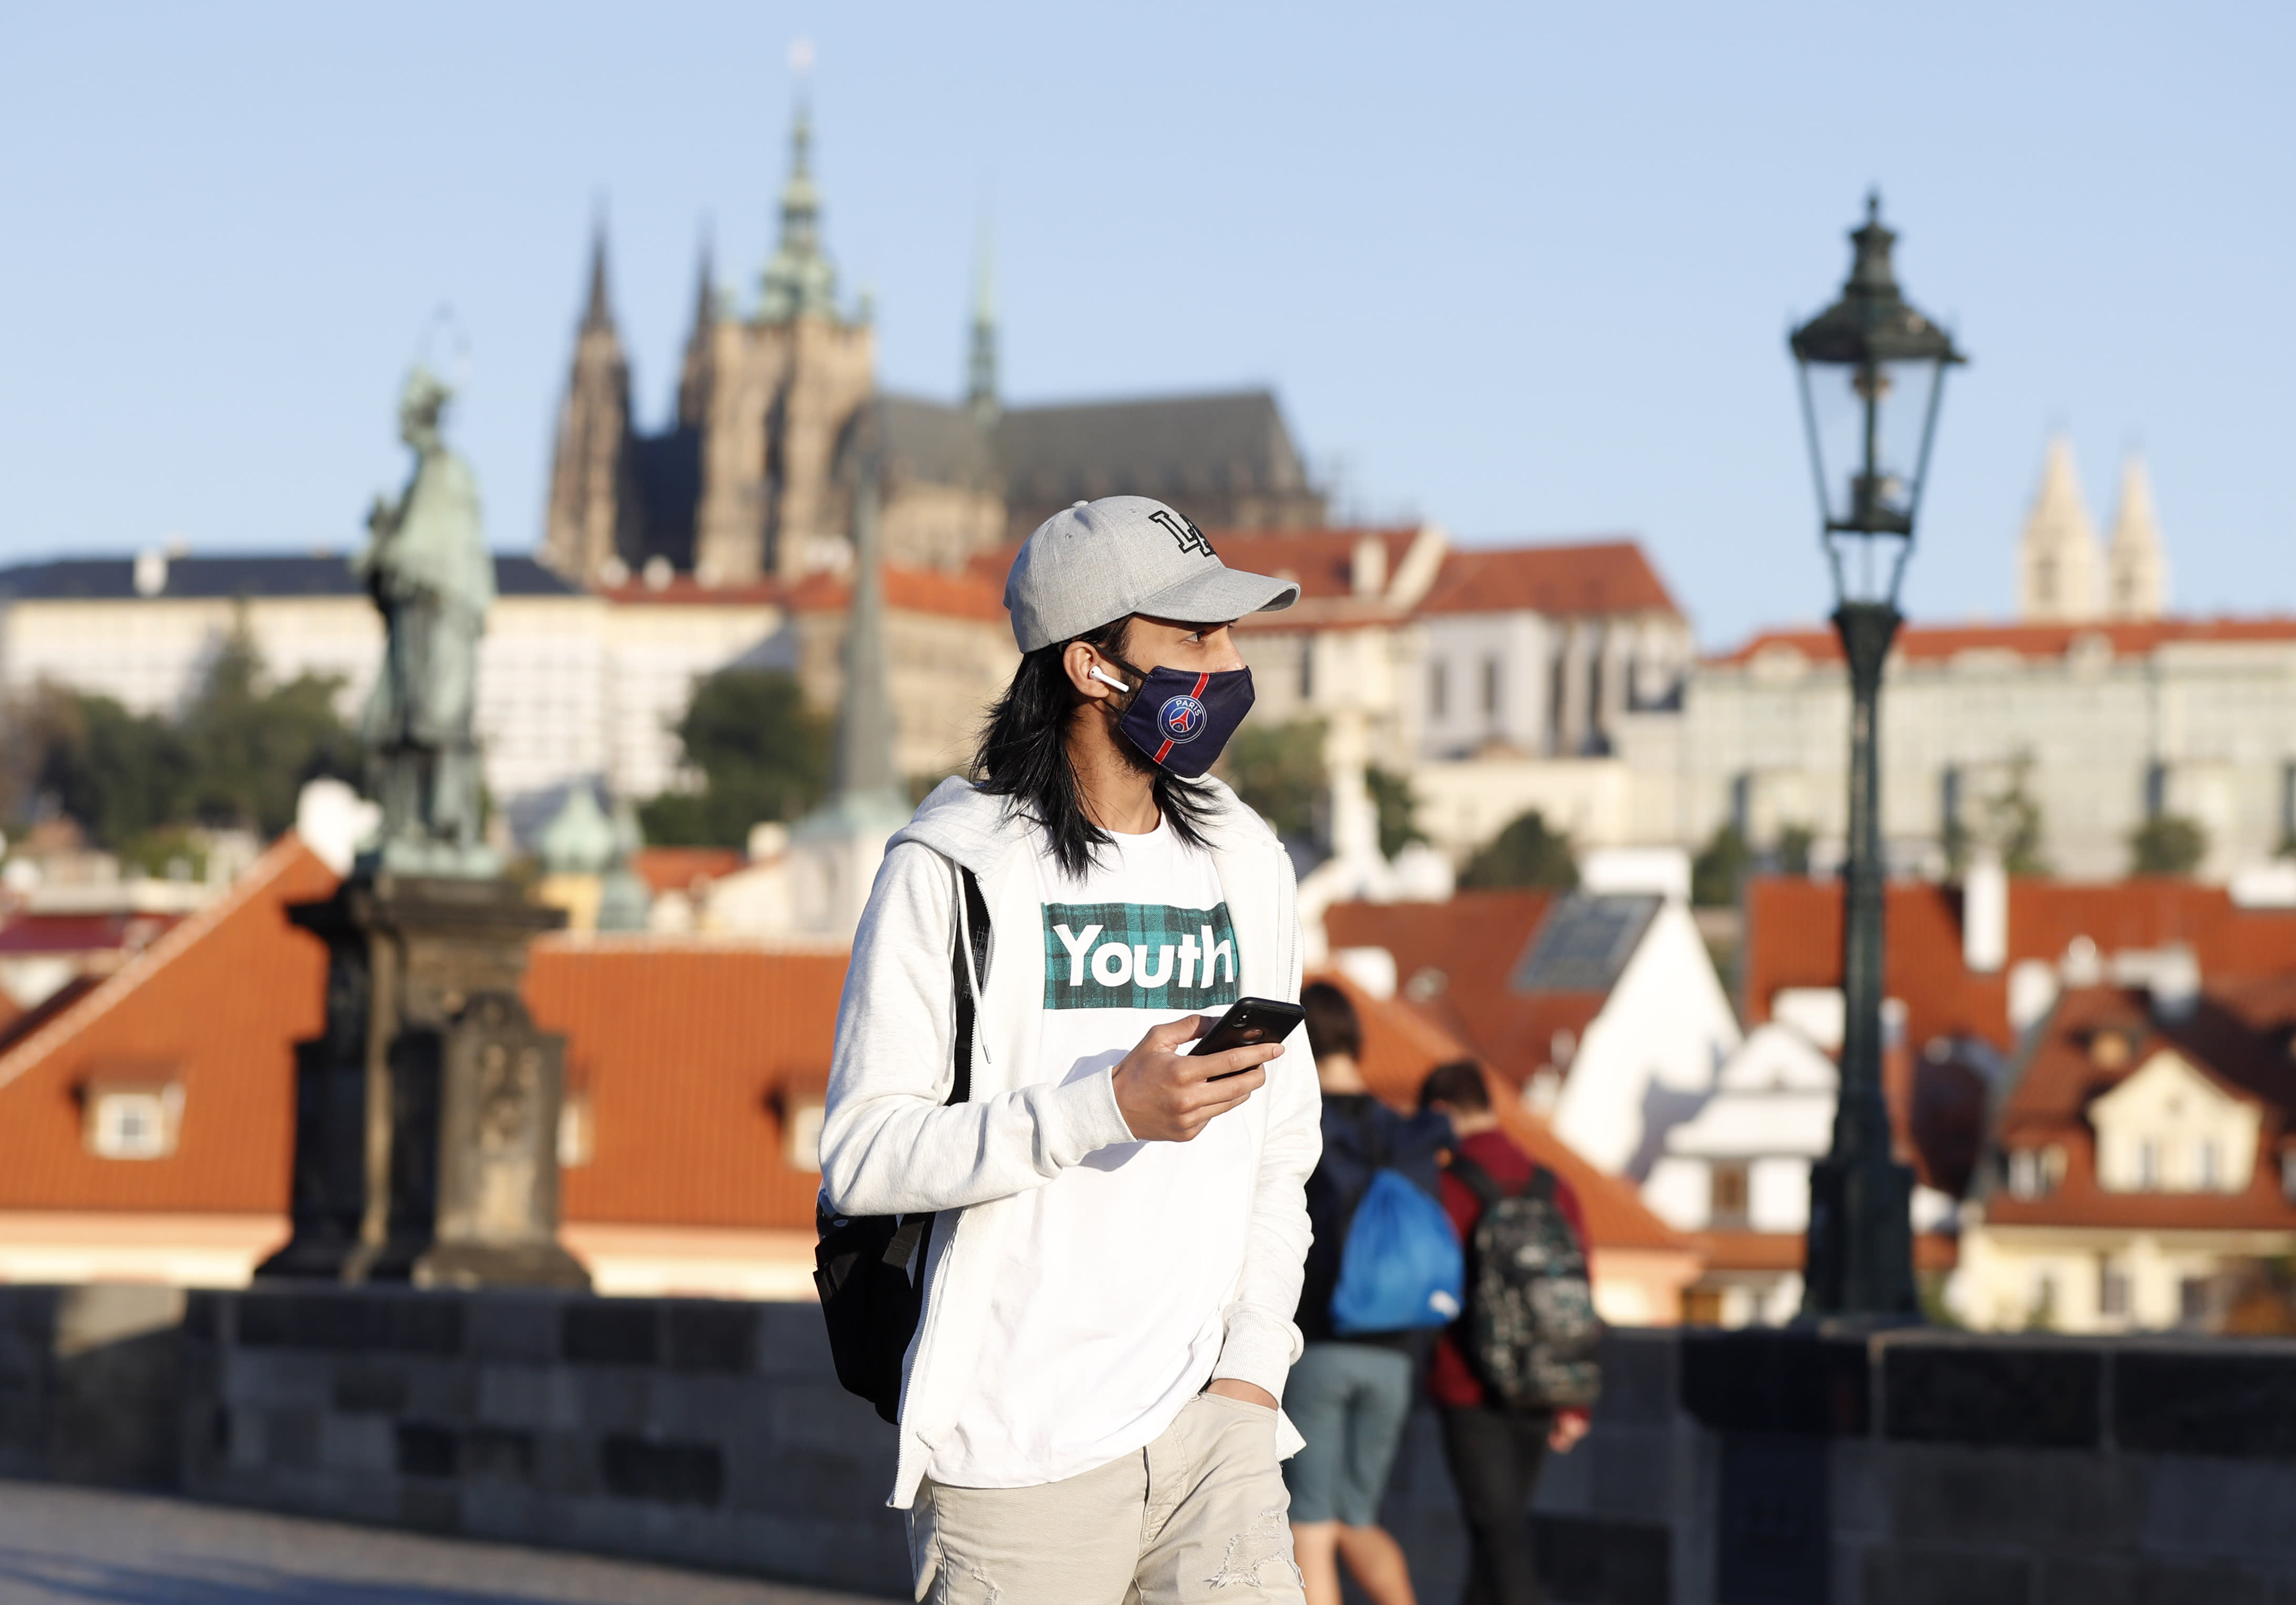 A young man wearing a face mask walks across the medieval Charles Bridge in Prague, Czech Republic, Friday, Sept. 18, 2020. The Czech Republic has been been facing the second wave of infections. The number of new confirmed coronavirus infections has been setting new records almost on a daily basis, currently surpassing 3,000 cases in one day for the first time. (AP Photo/Petr David Josek)